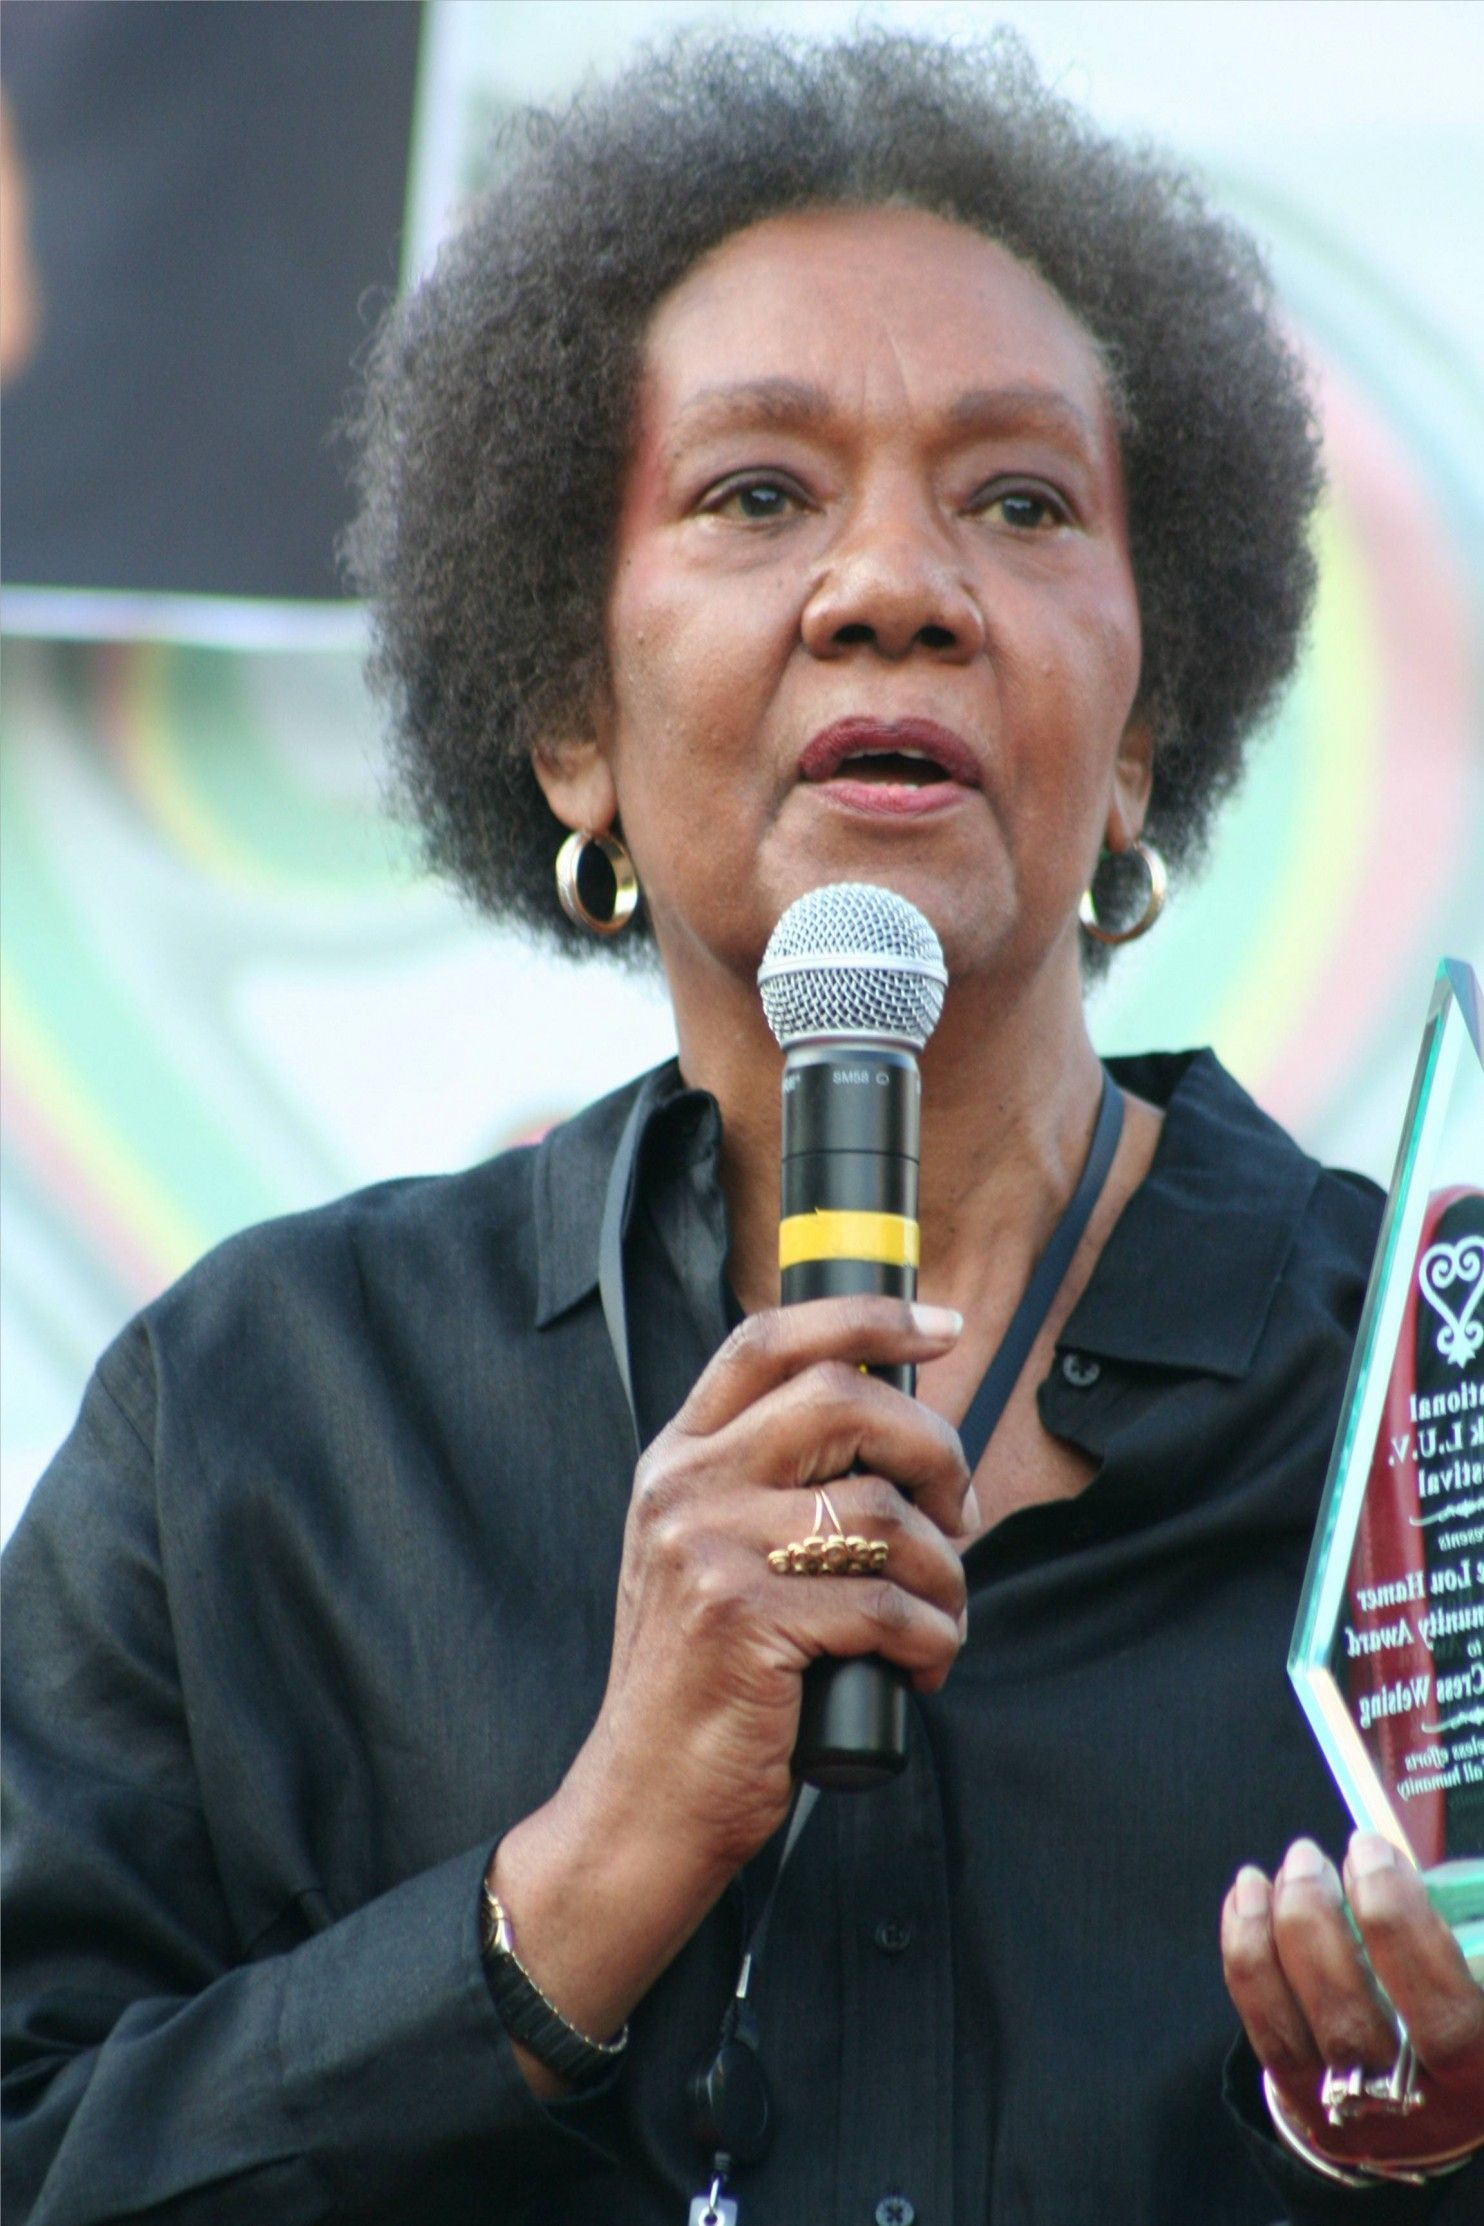 Memorial service to be held for celebrated, controversial Frances Cress Welsing - The Washington Post